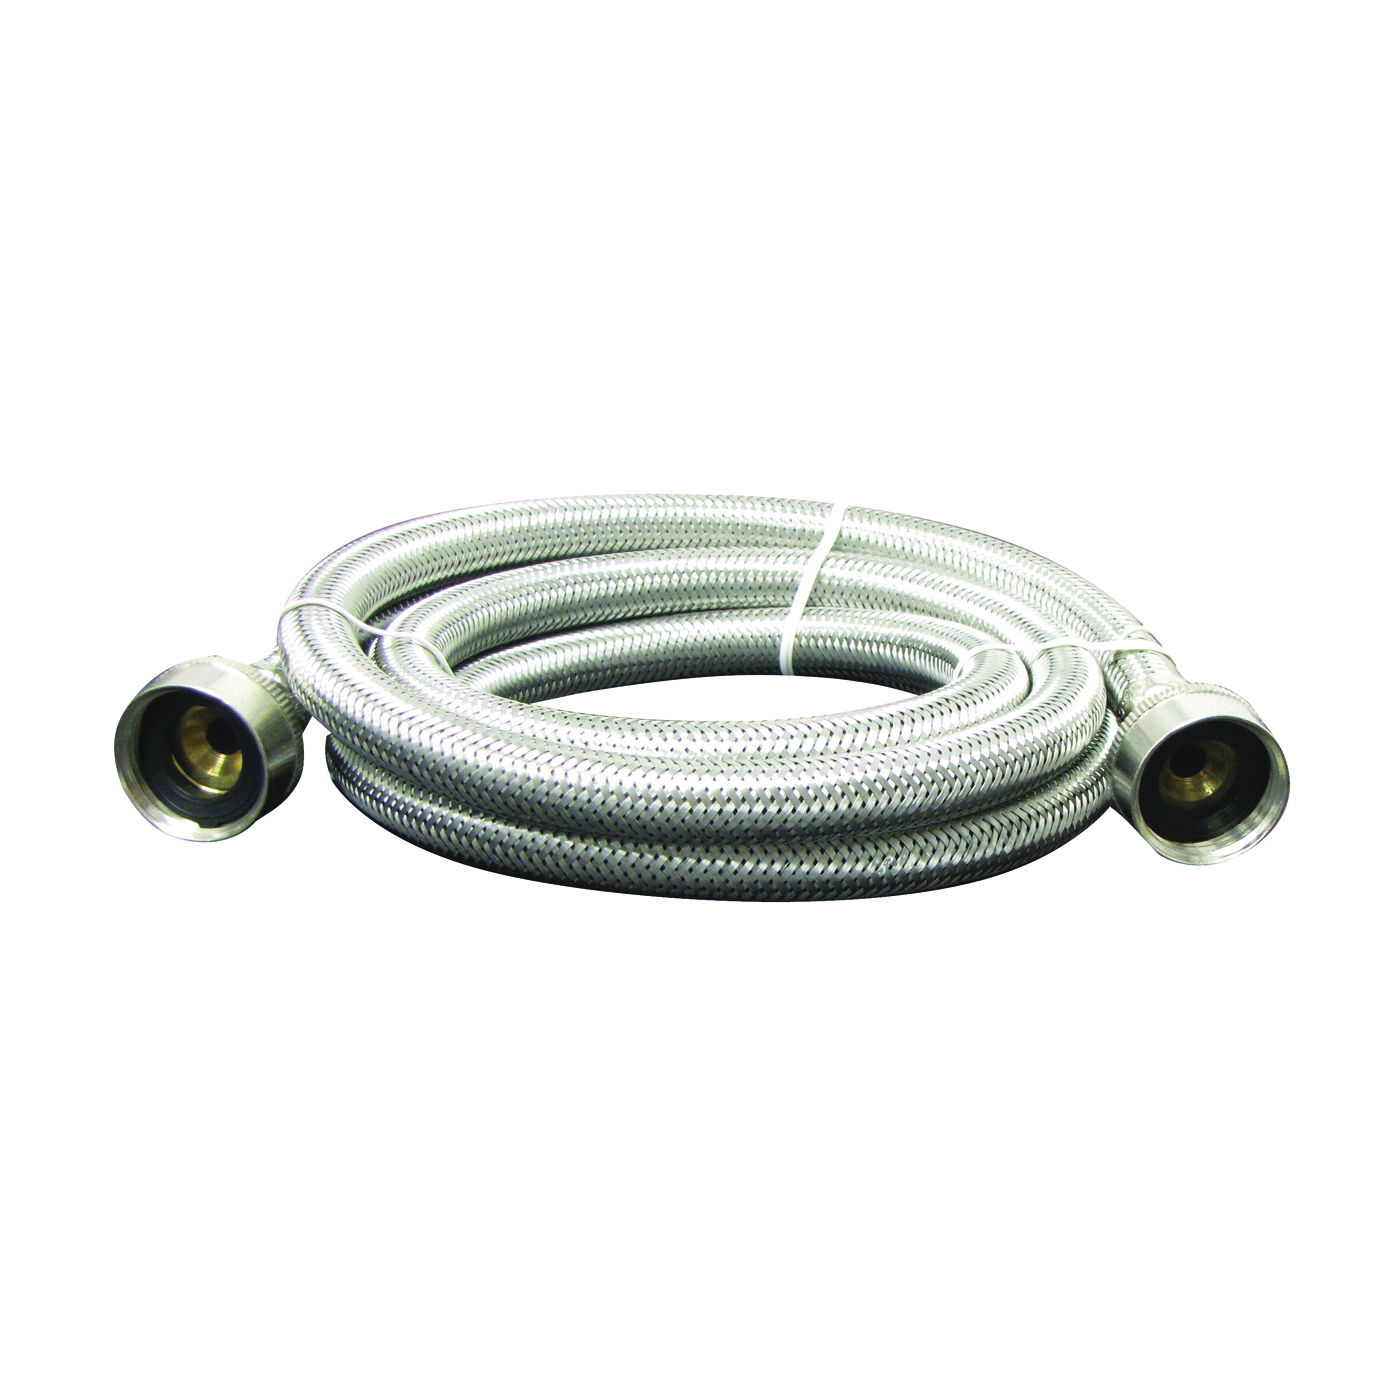 Picture of Plumb Pak PP22816 Washing Machine Hose, 6 ft L, FGH x FGH, Stainless Steel